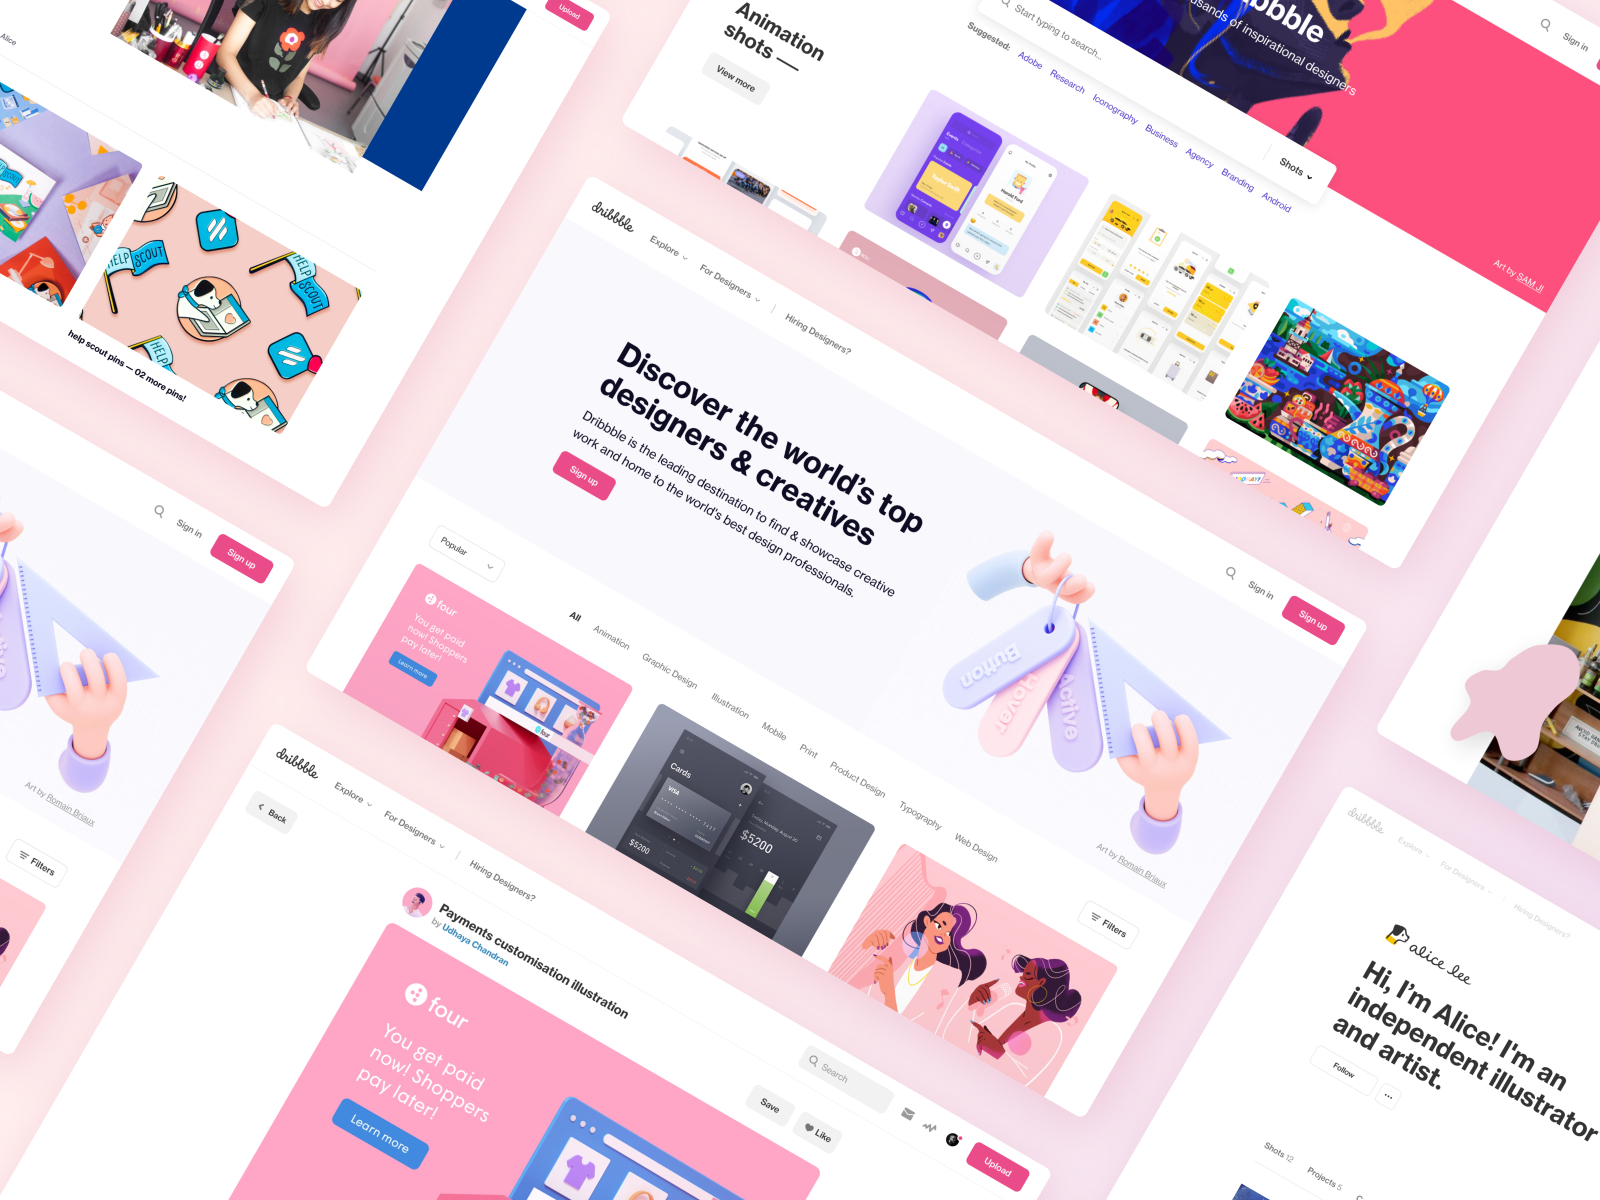 Screenshots of different screens for Dribbble